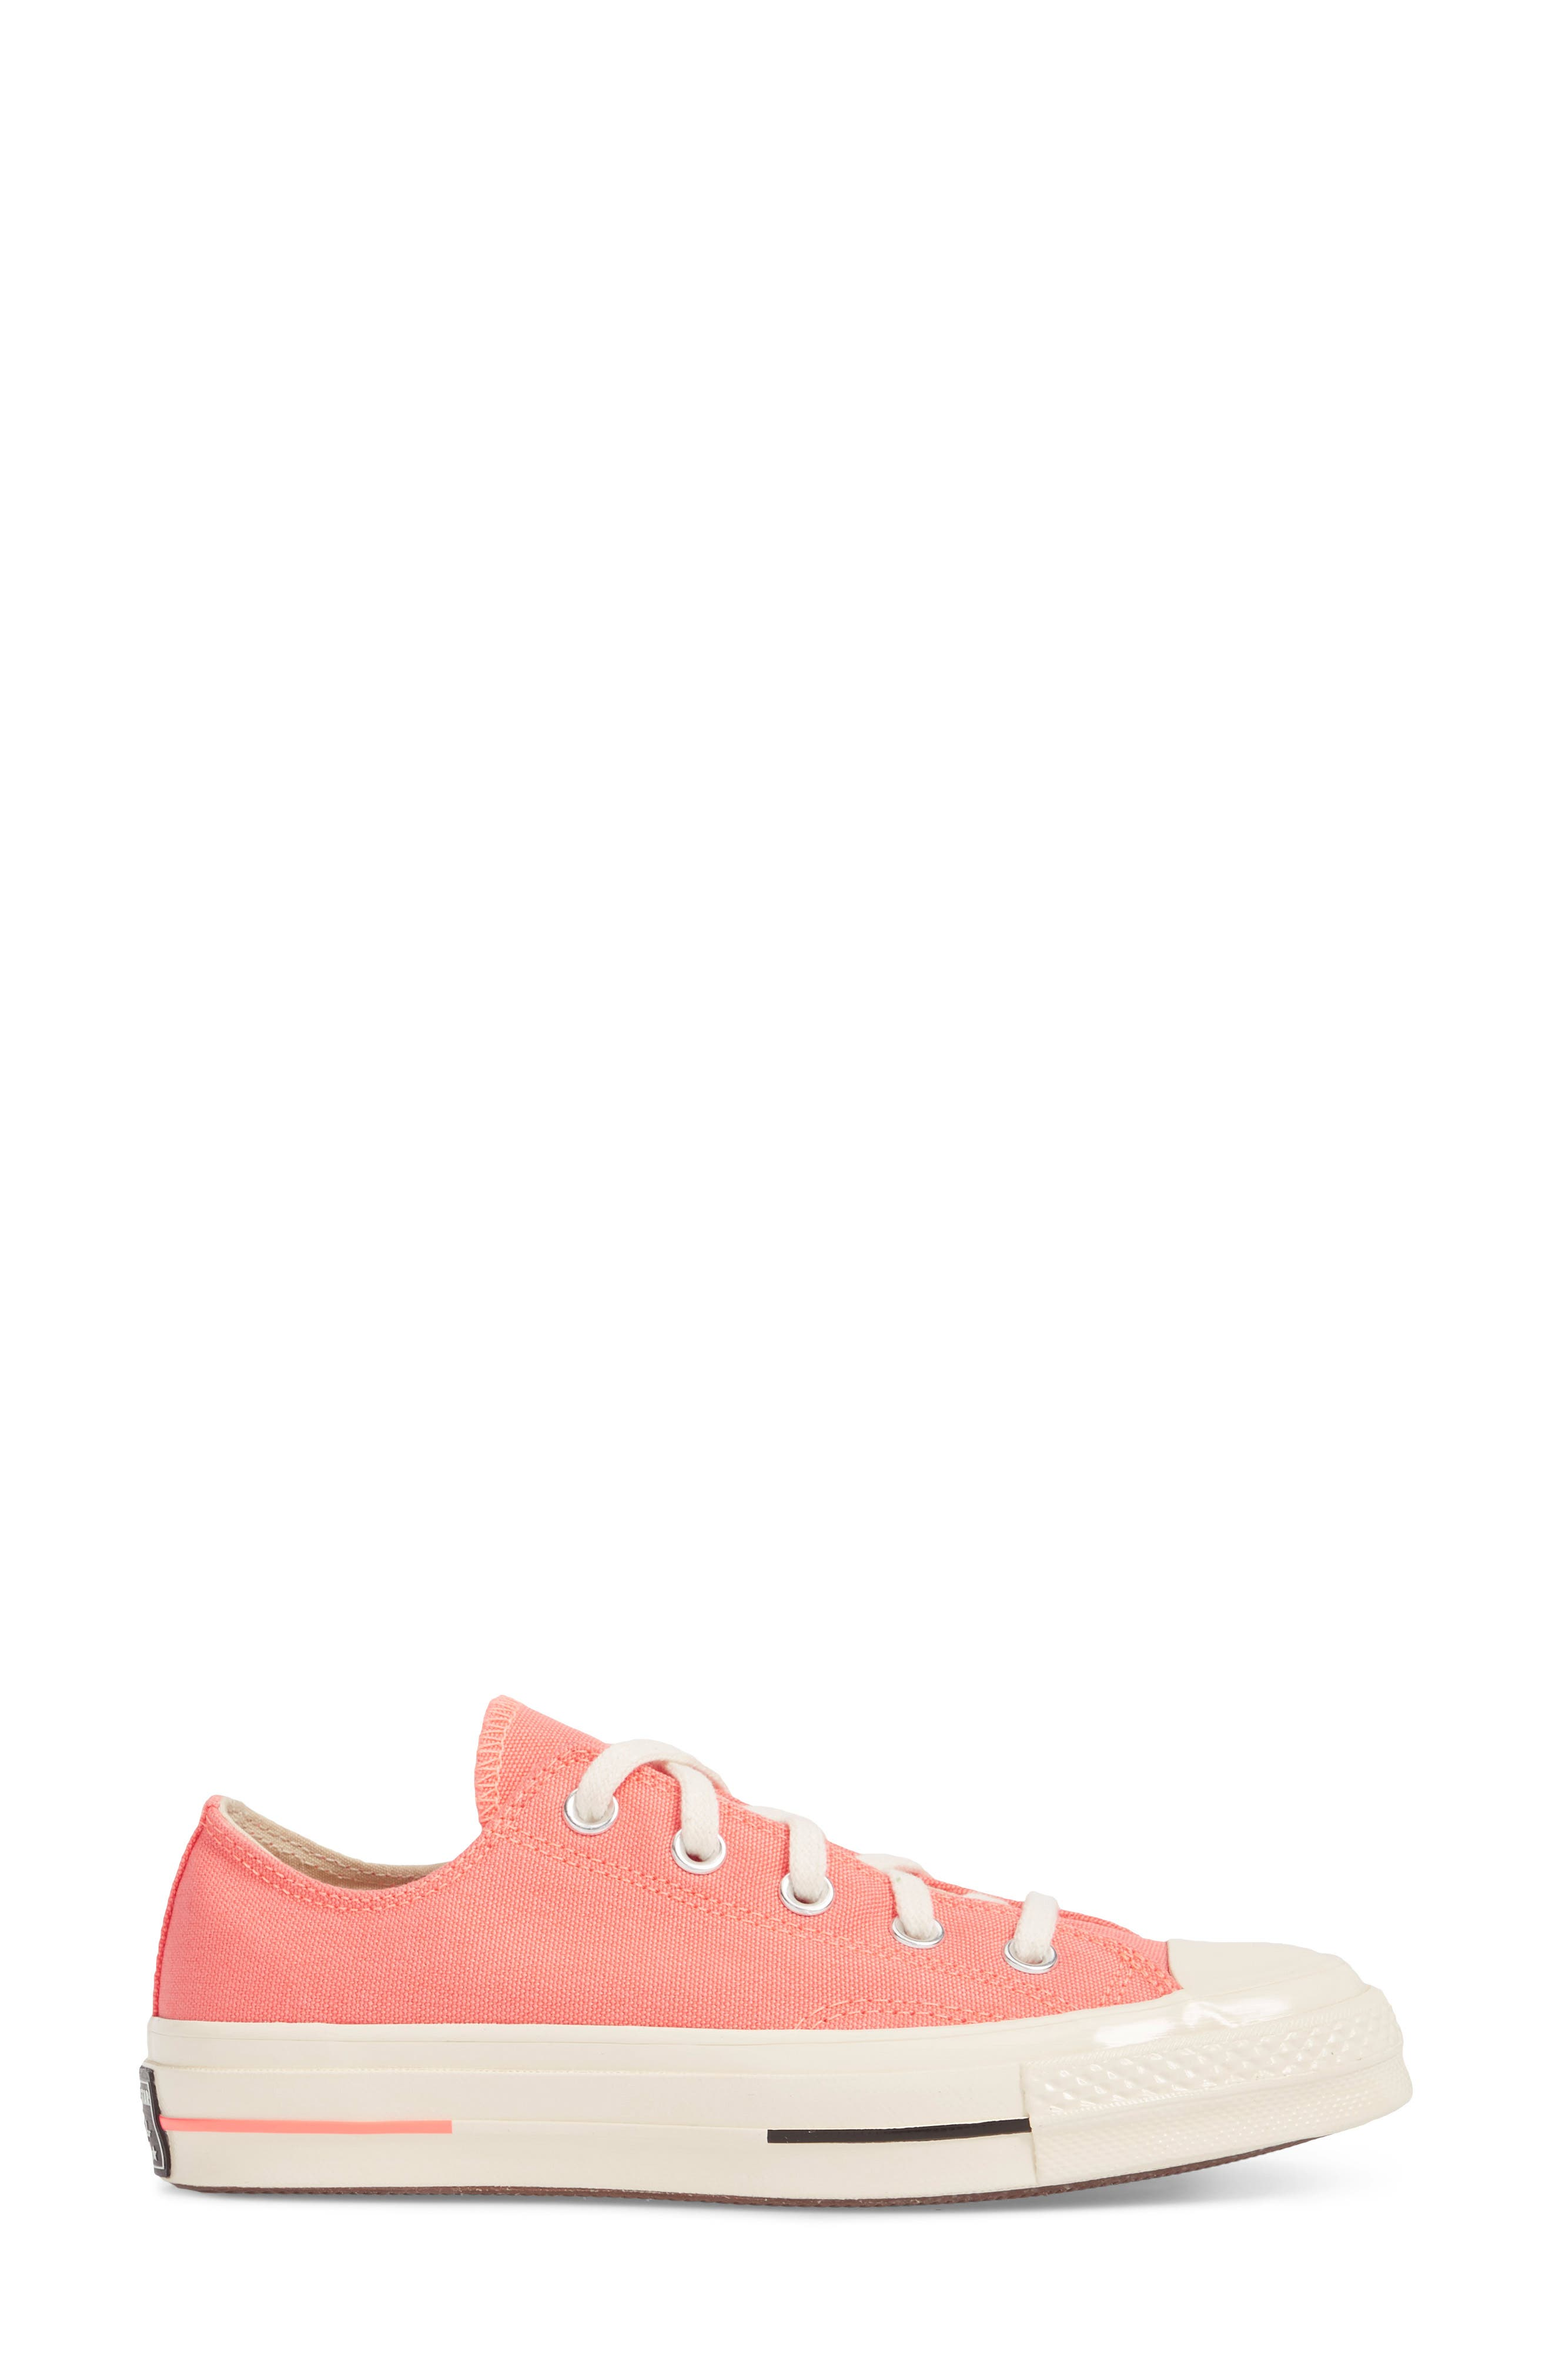 Alternate Image 3  - Converse Chuck Taylor® All Star® '70s Brights Low Top Sneaker (Women)